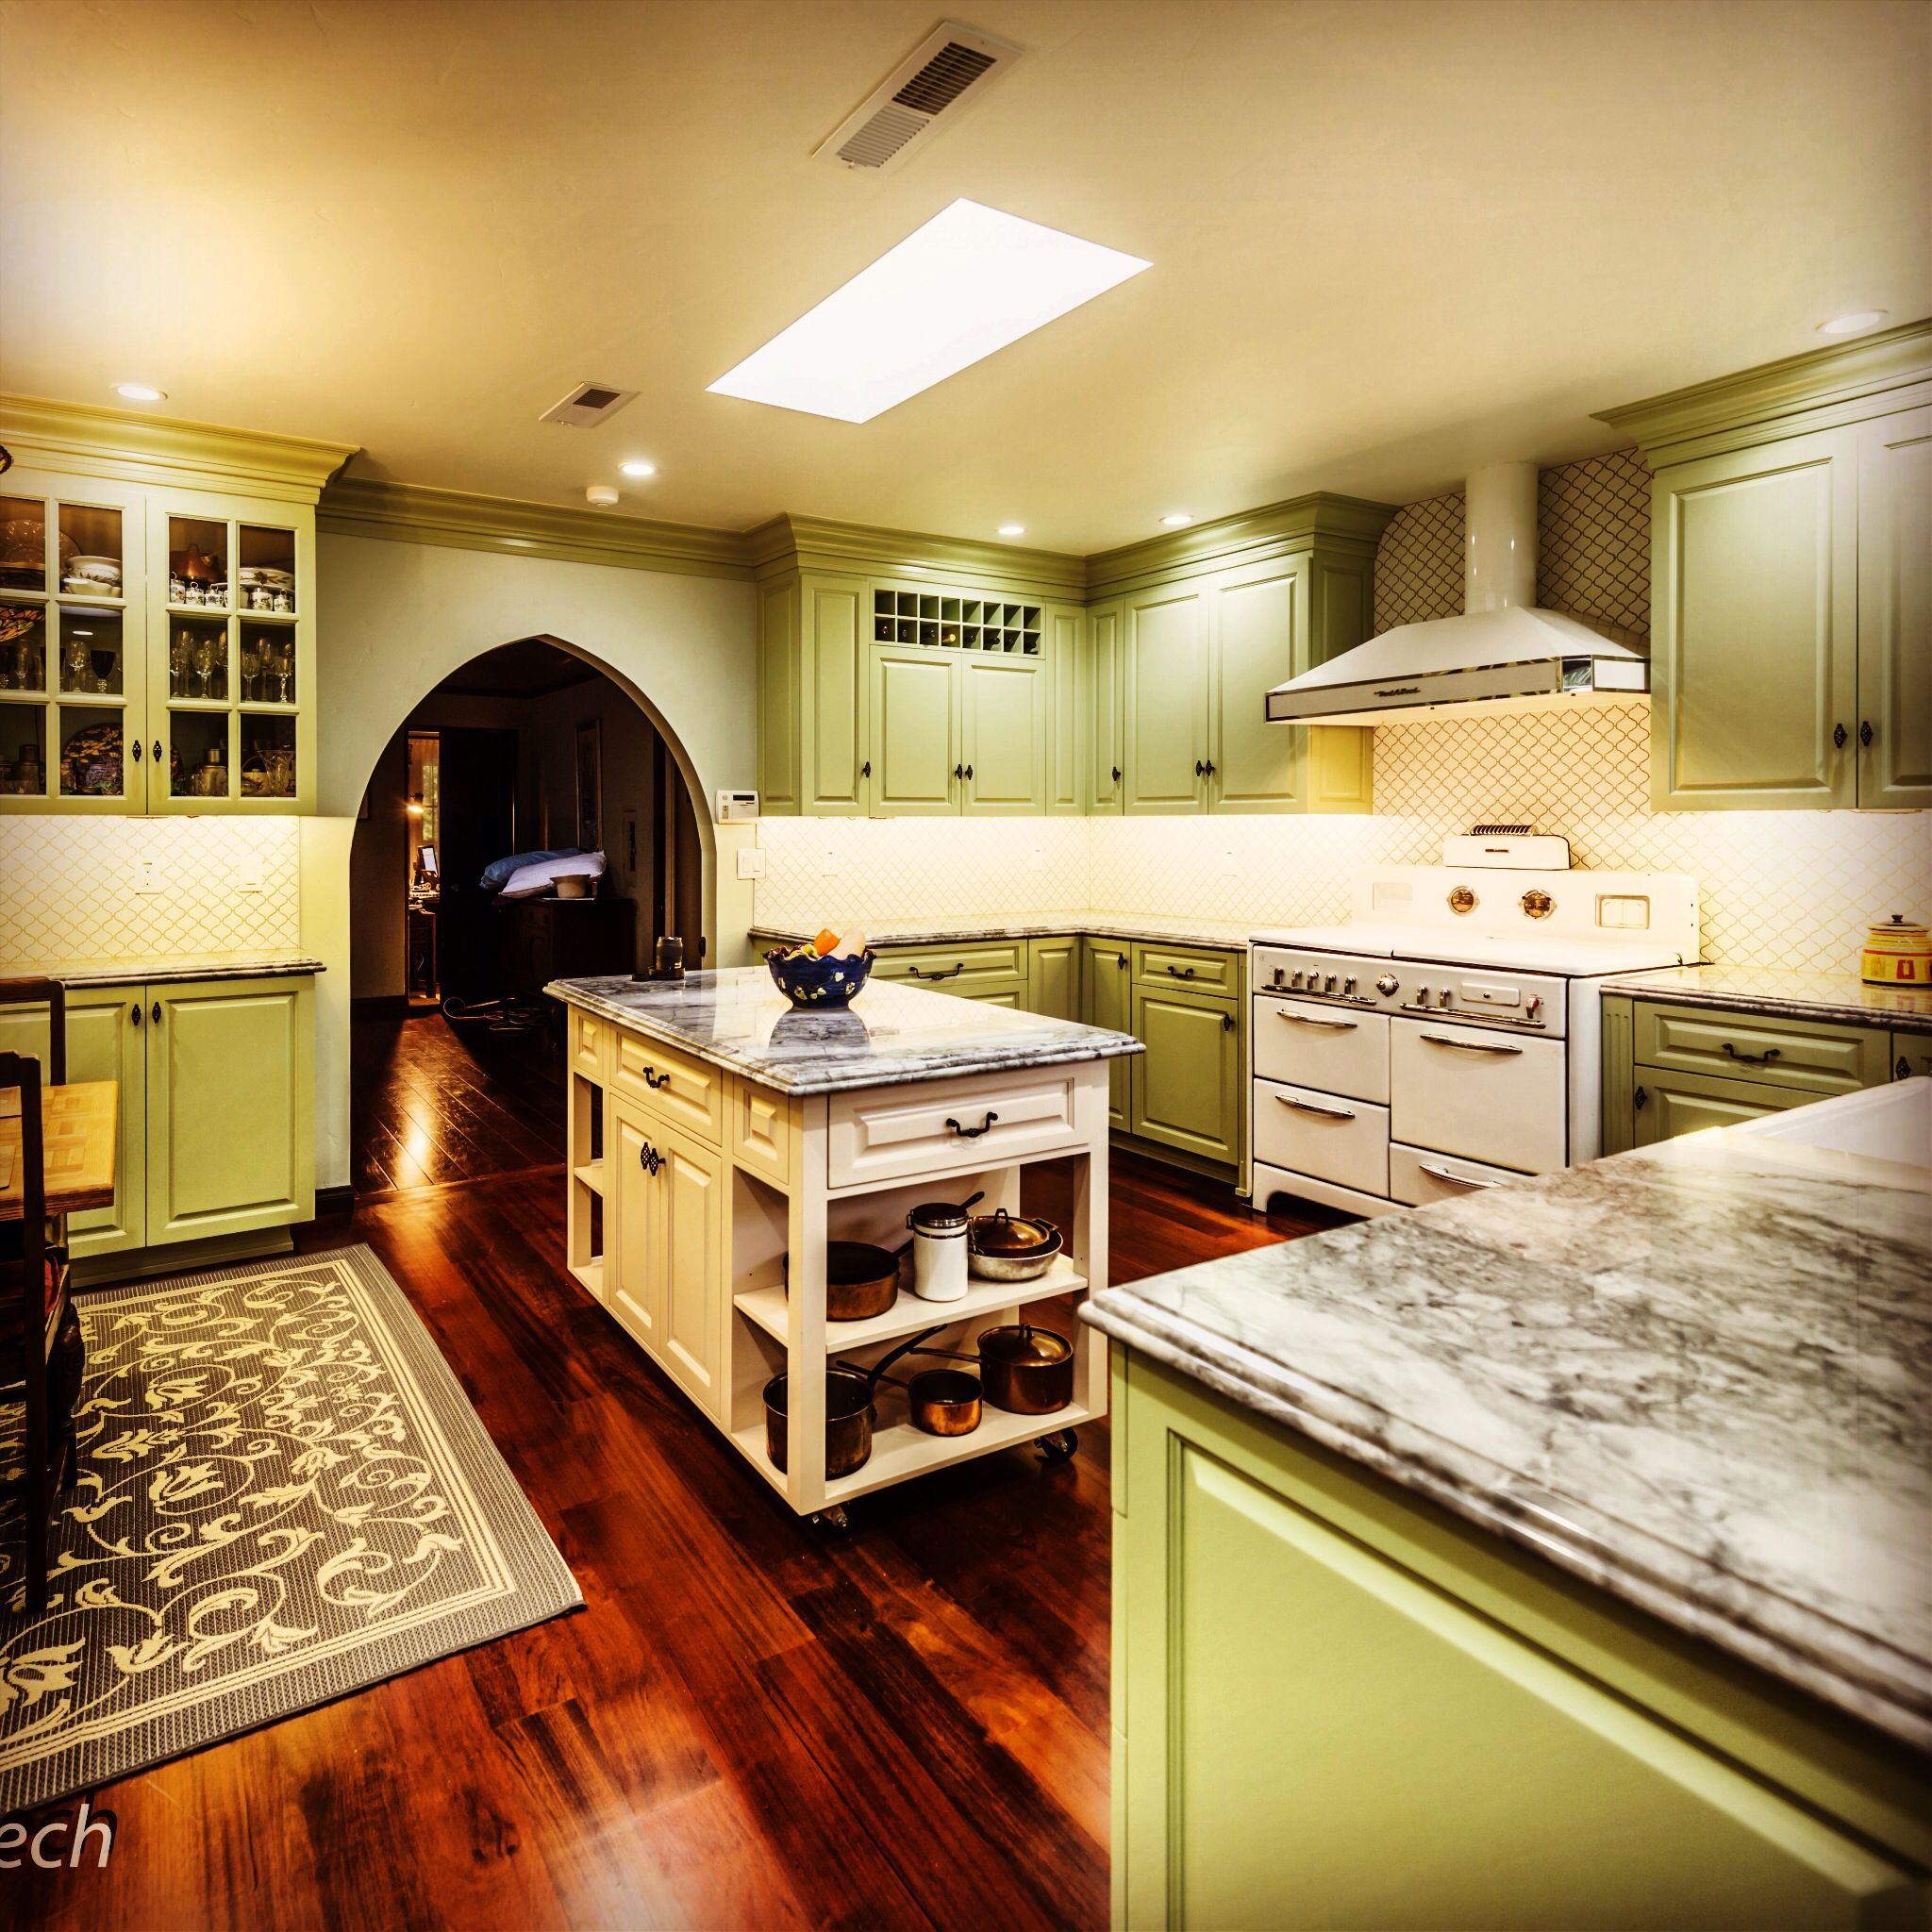 Retro Farmhouse Kitchen With Spanish Moorish Moroccan Tiles On The Walls And Vintage Refurbished Stove